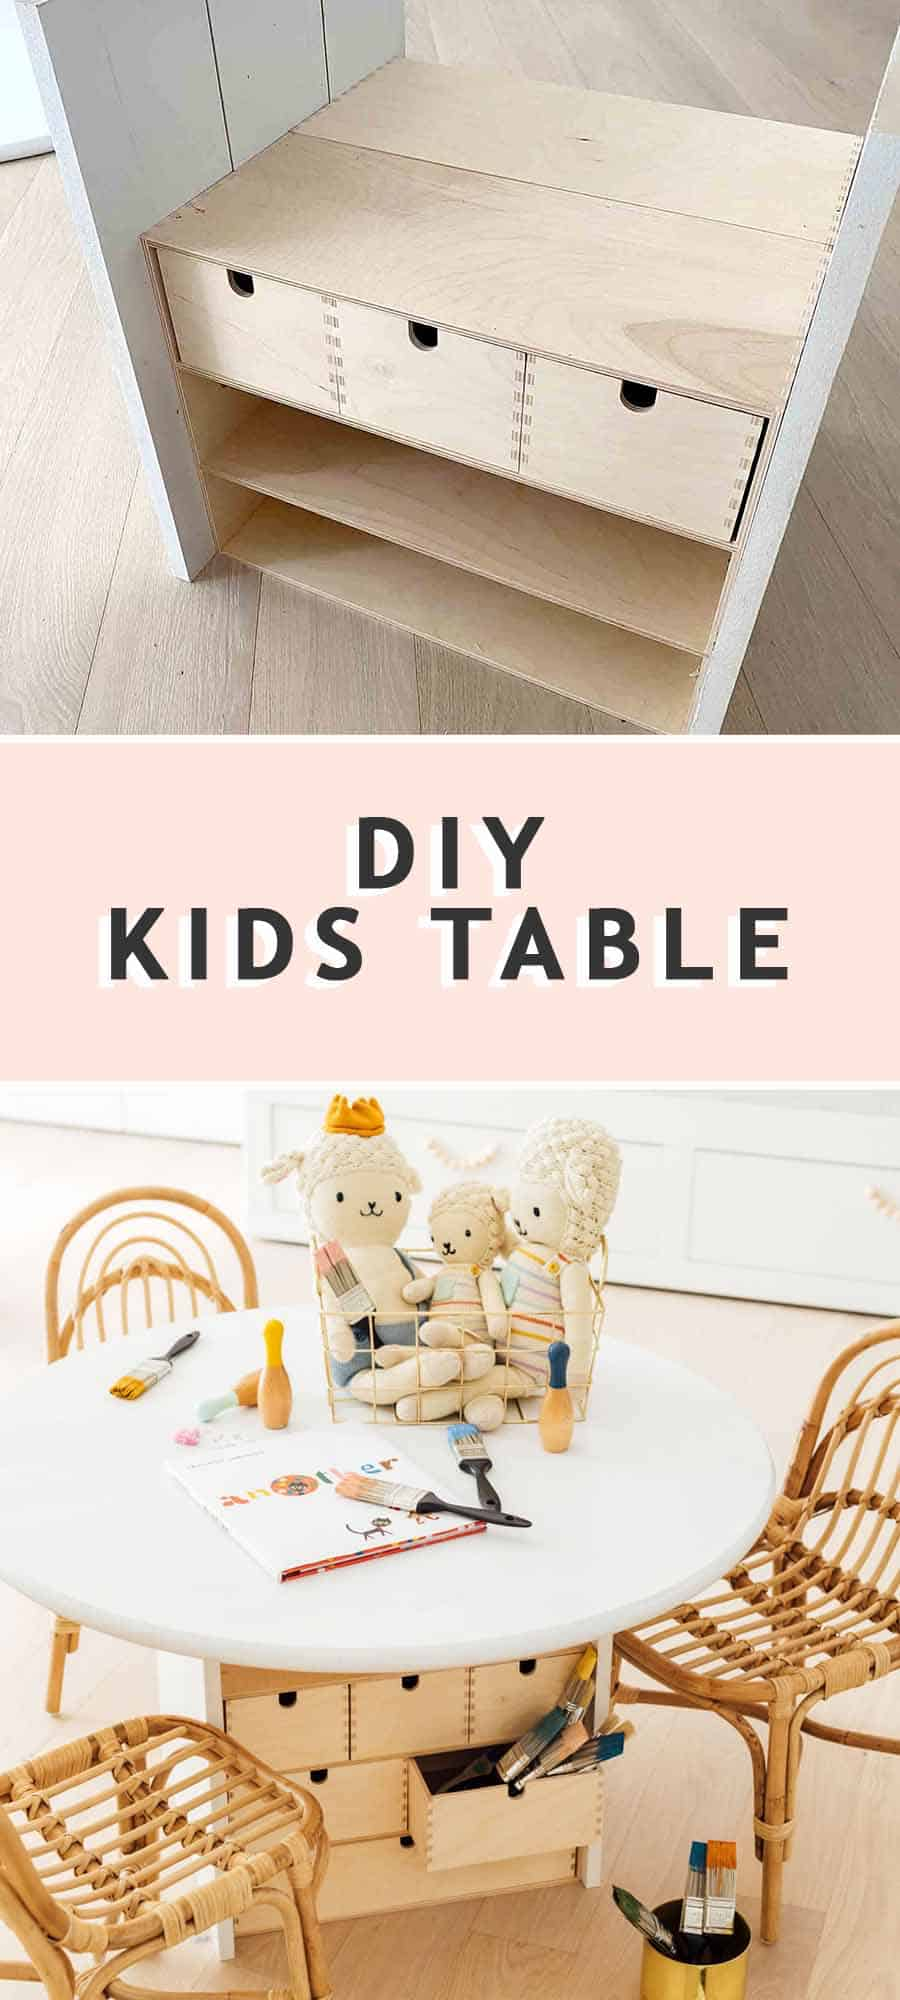 photo of a step by step guide on how to make an easy DIY Kids Table by top Houston lifestyle blogger Ashley Rose of Sugar & Cloth